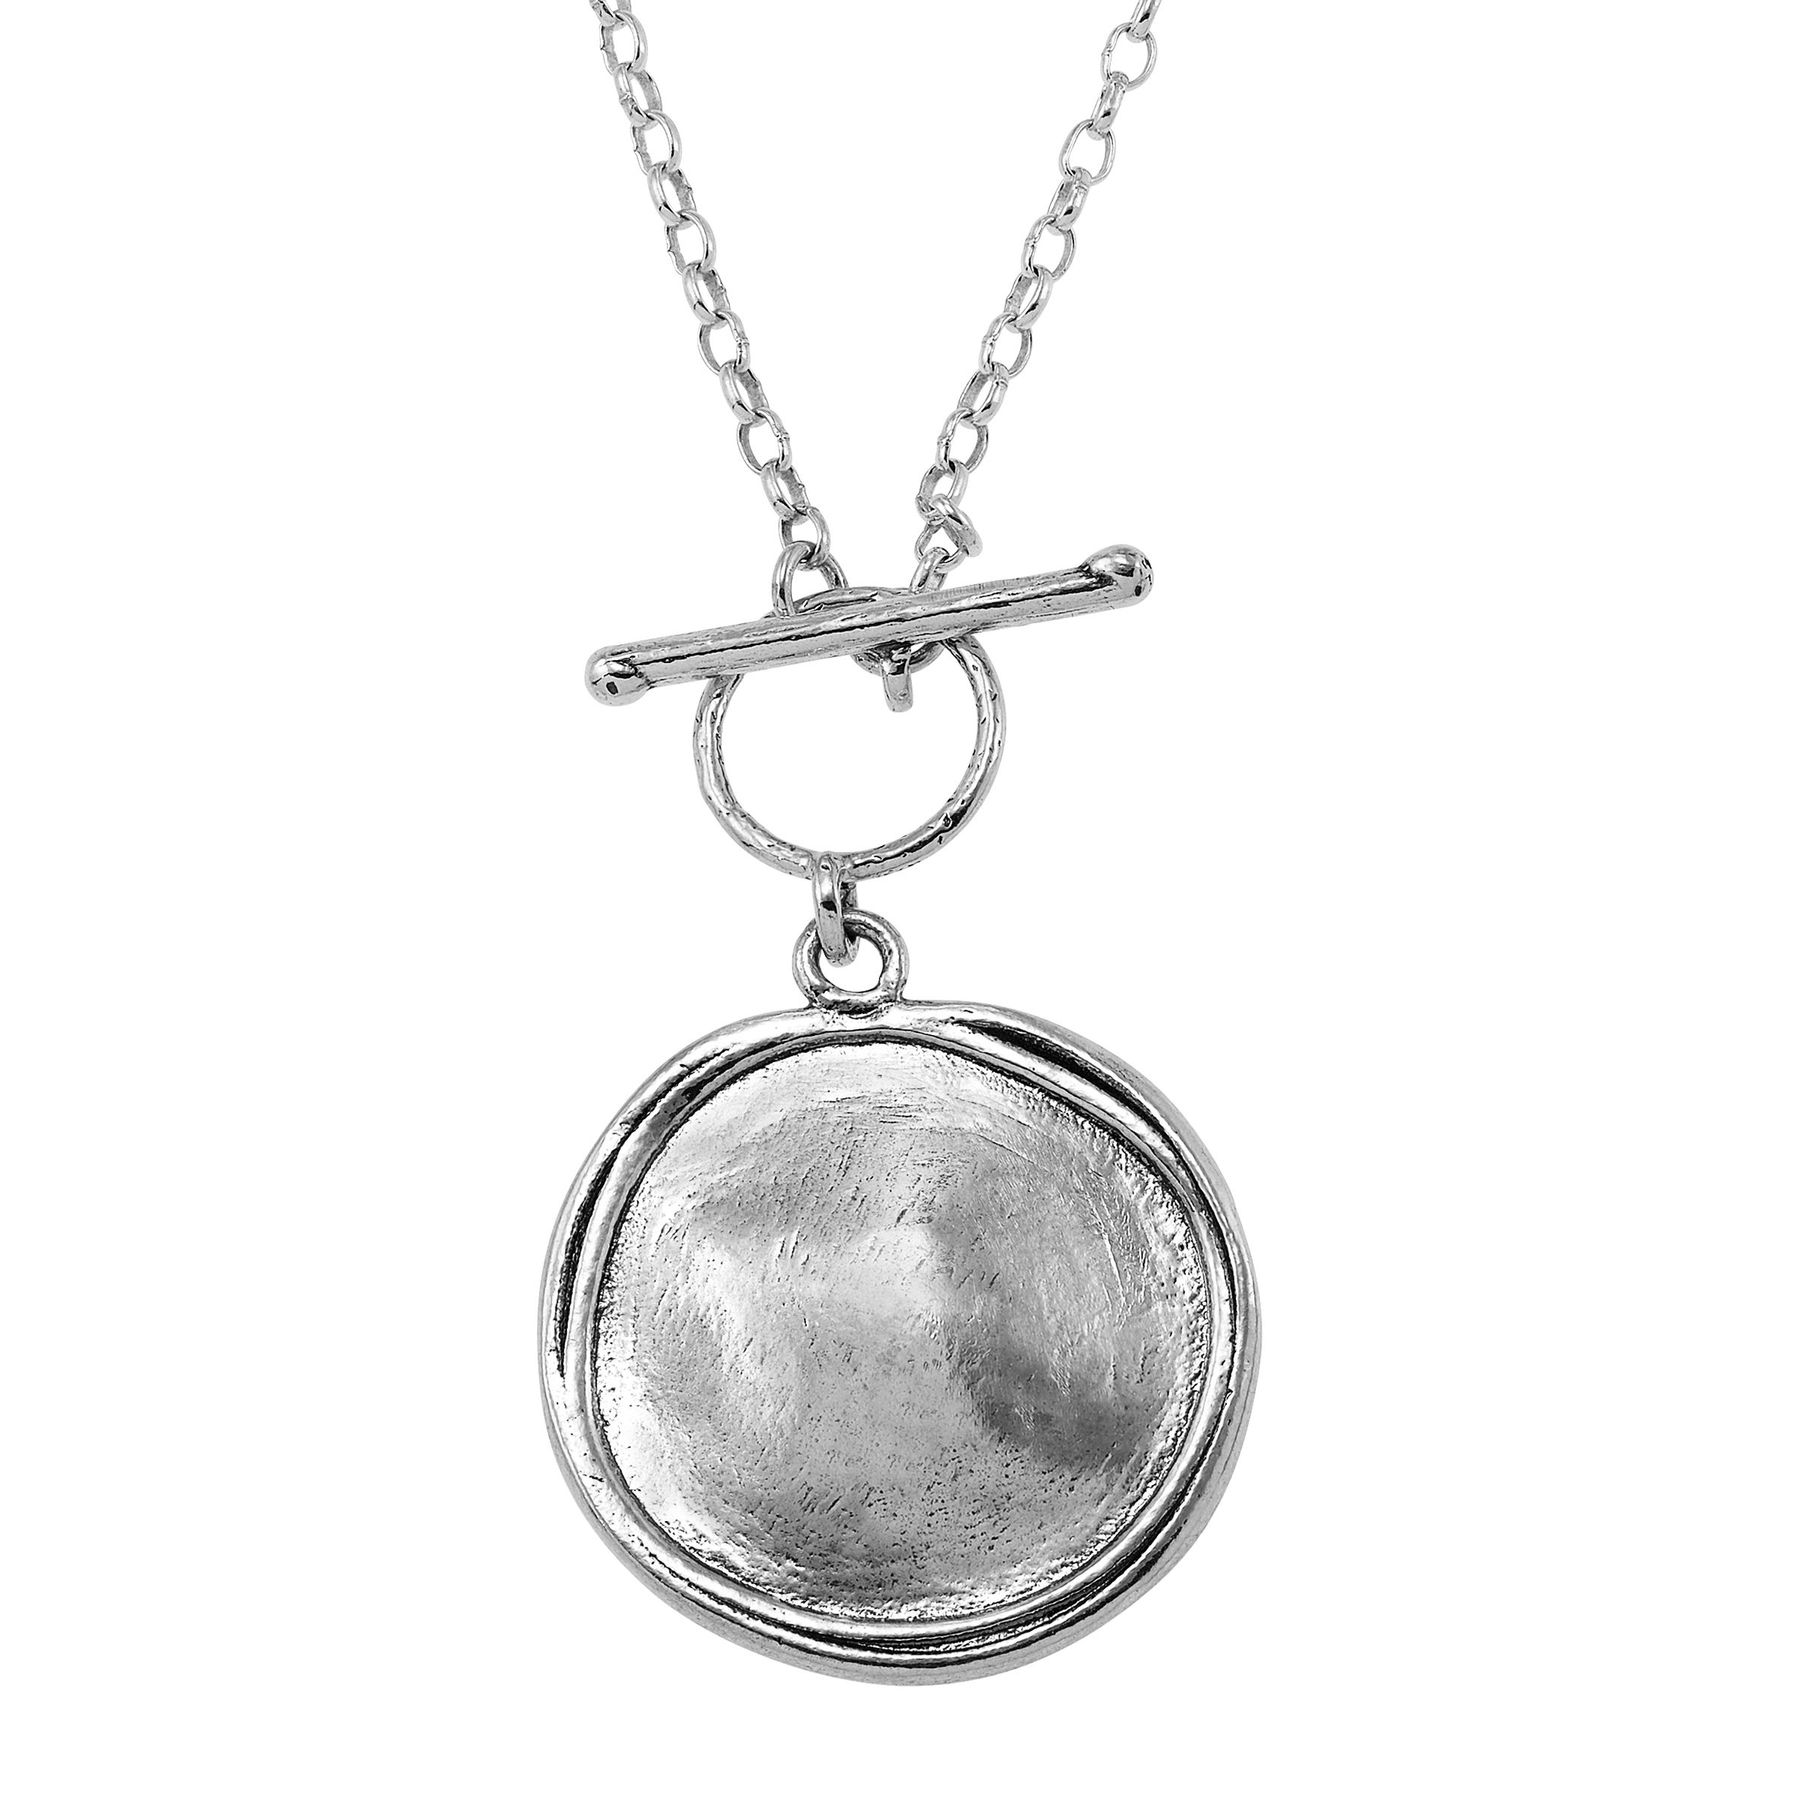 Sterling Silver Polished Sand Dollar Charm New Pendant